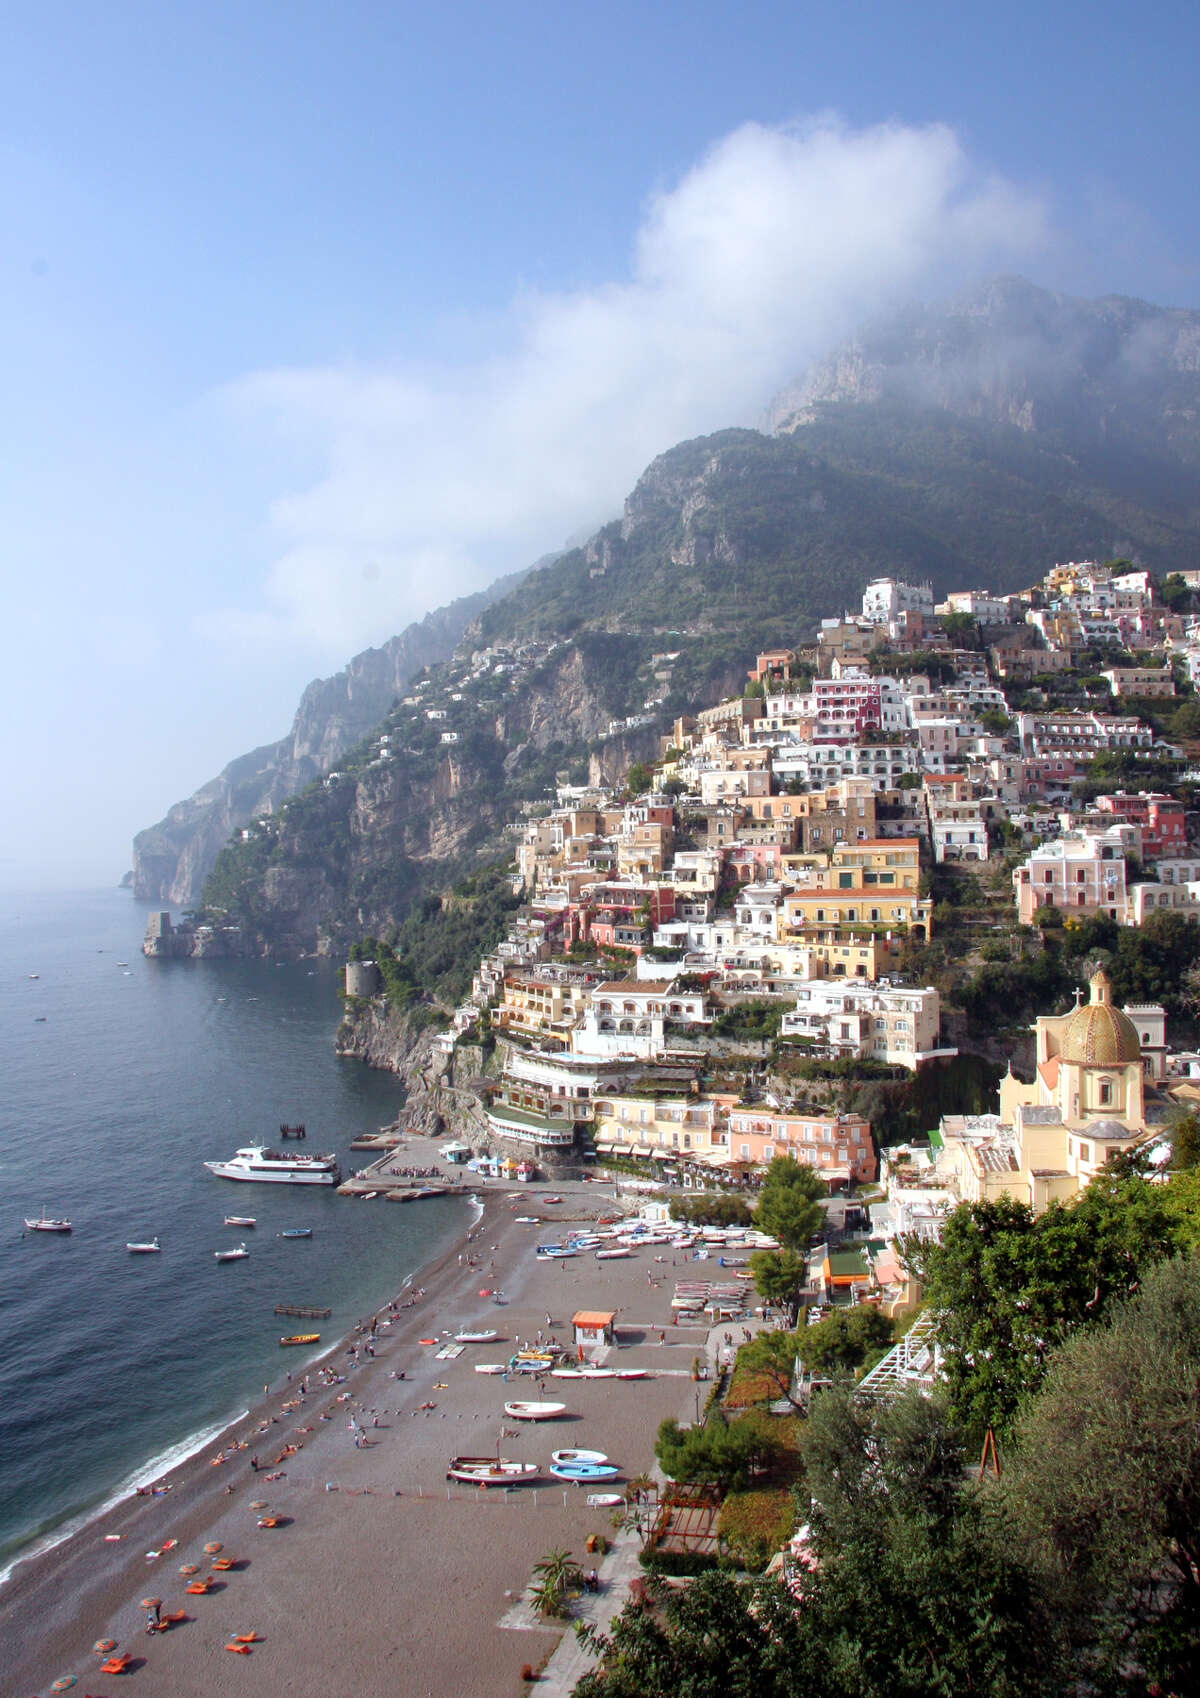 Specializing in scenery and sand, Positano scrambles down a cliff halfway between Sorrento and Amalfi town. (photo: Pat O'Connor)